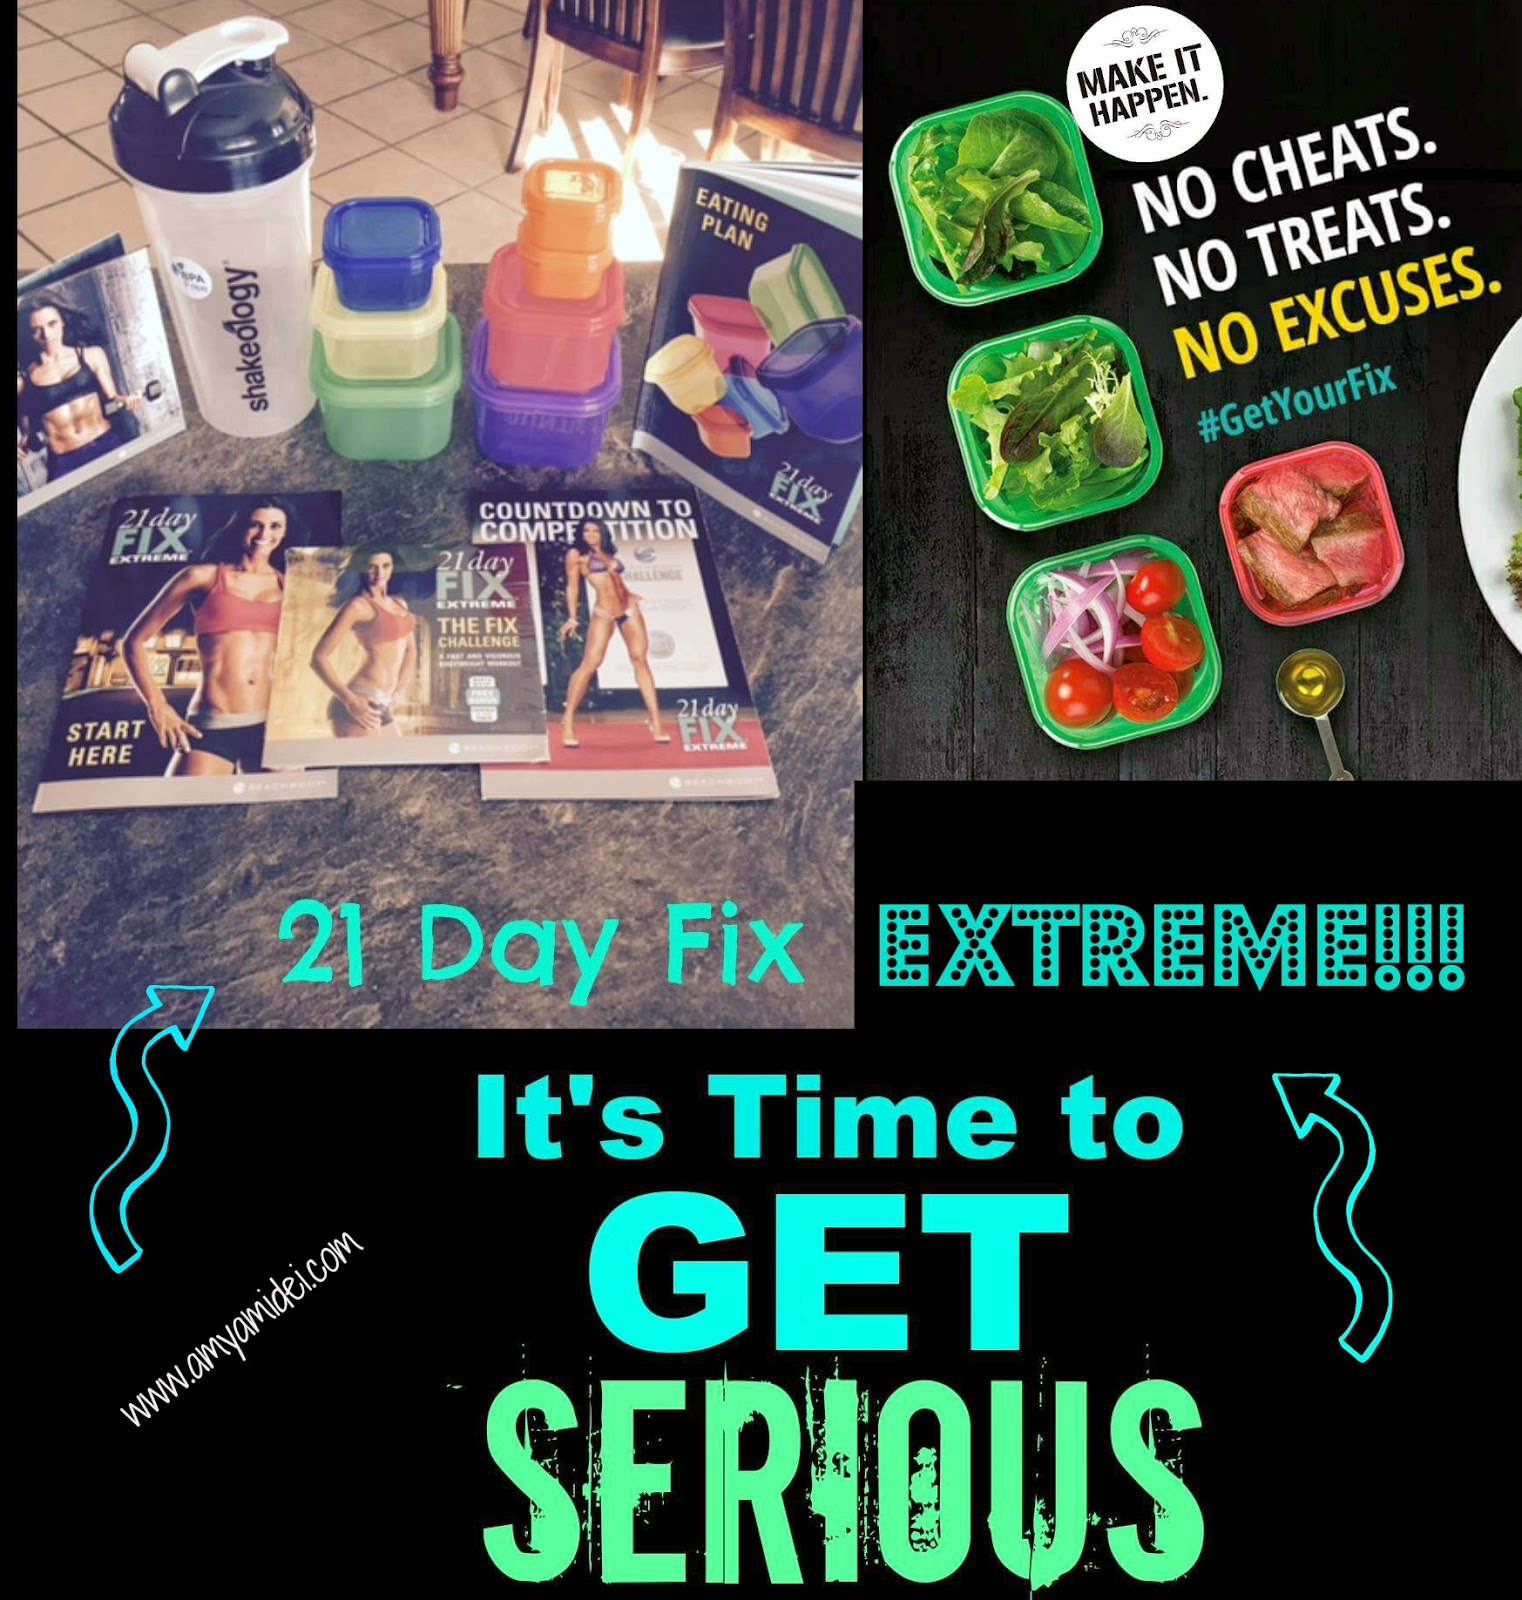 21 day fix, 21 day fix extreme, t 25, beginner fitness, motivational fitness, ancestrydna, ancestry, familysearch, genealogy